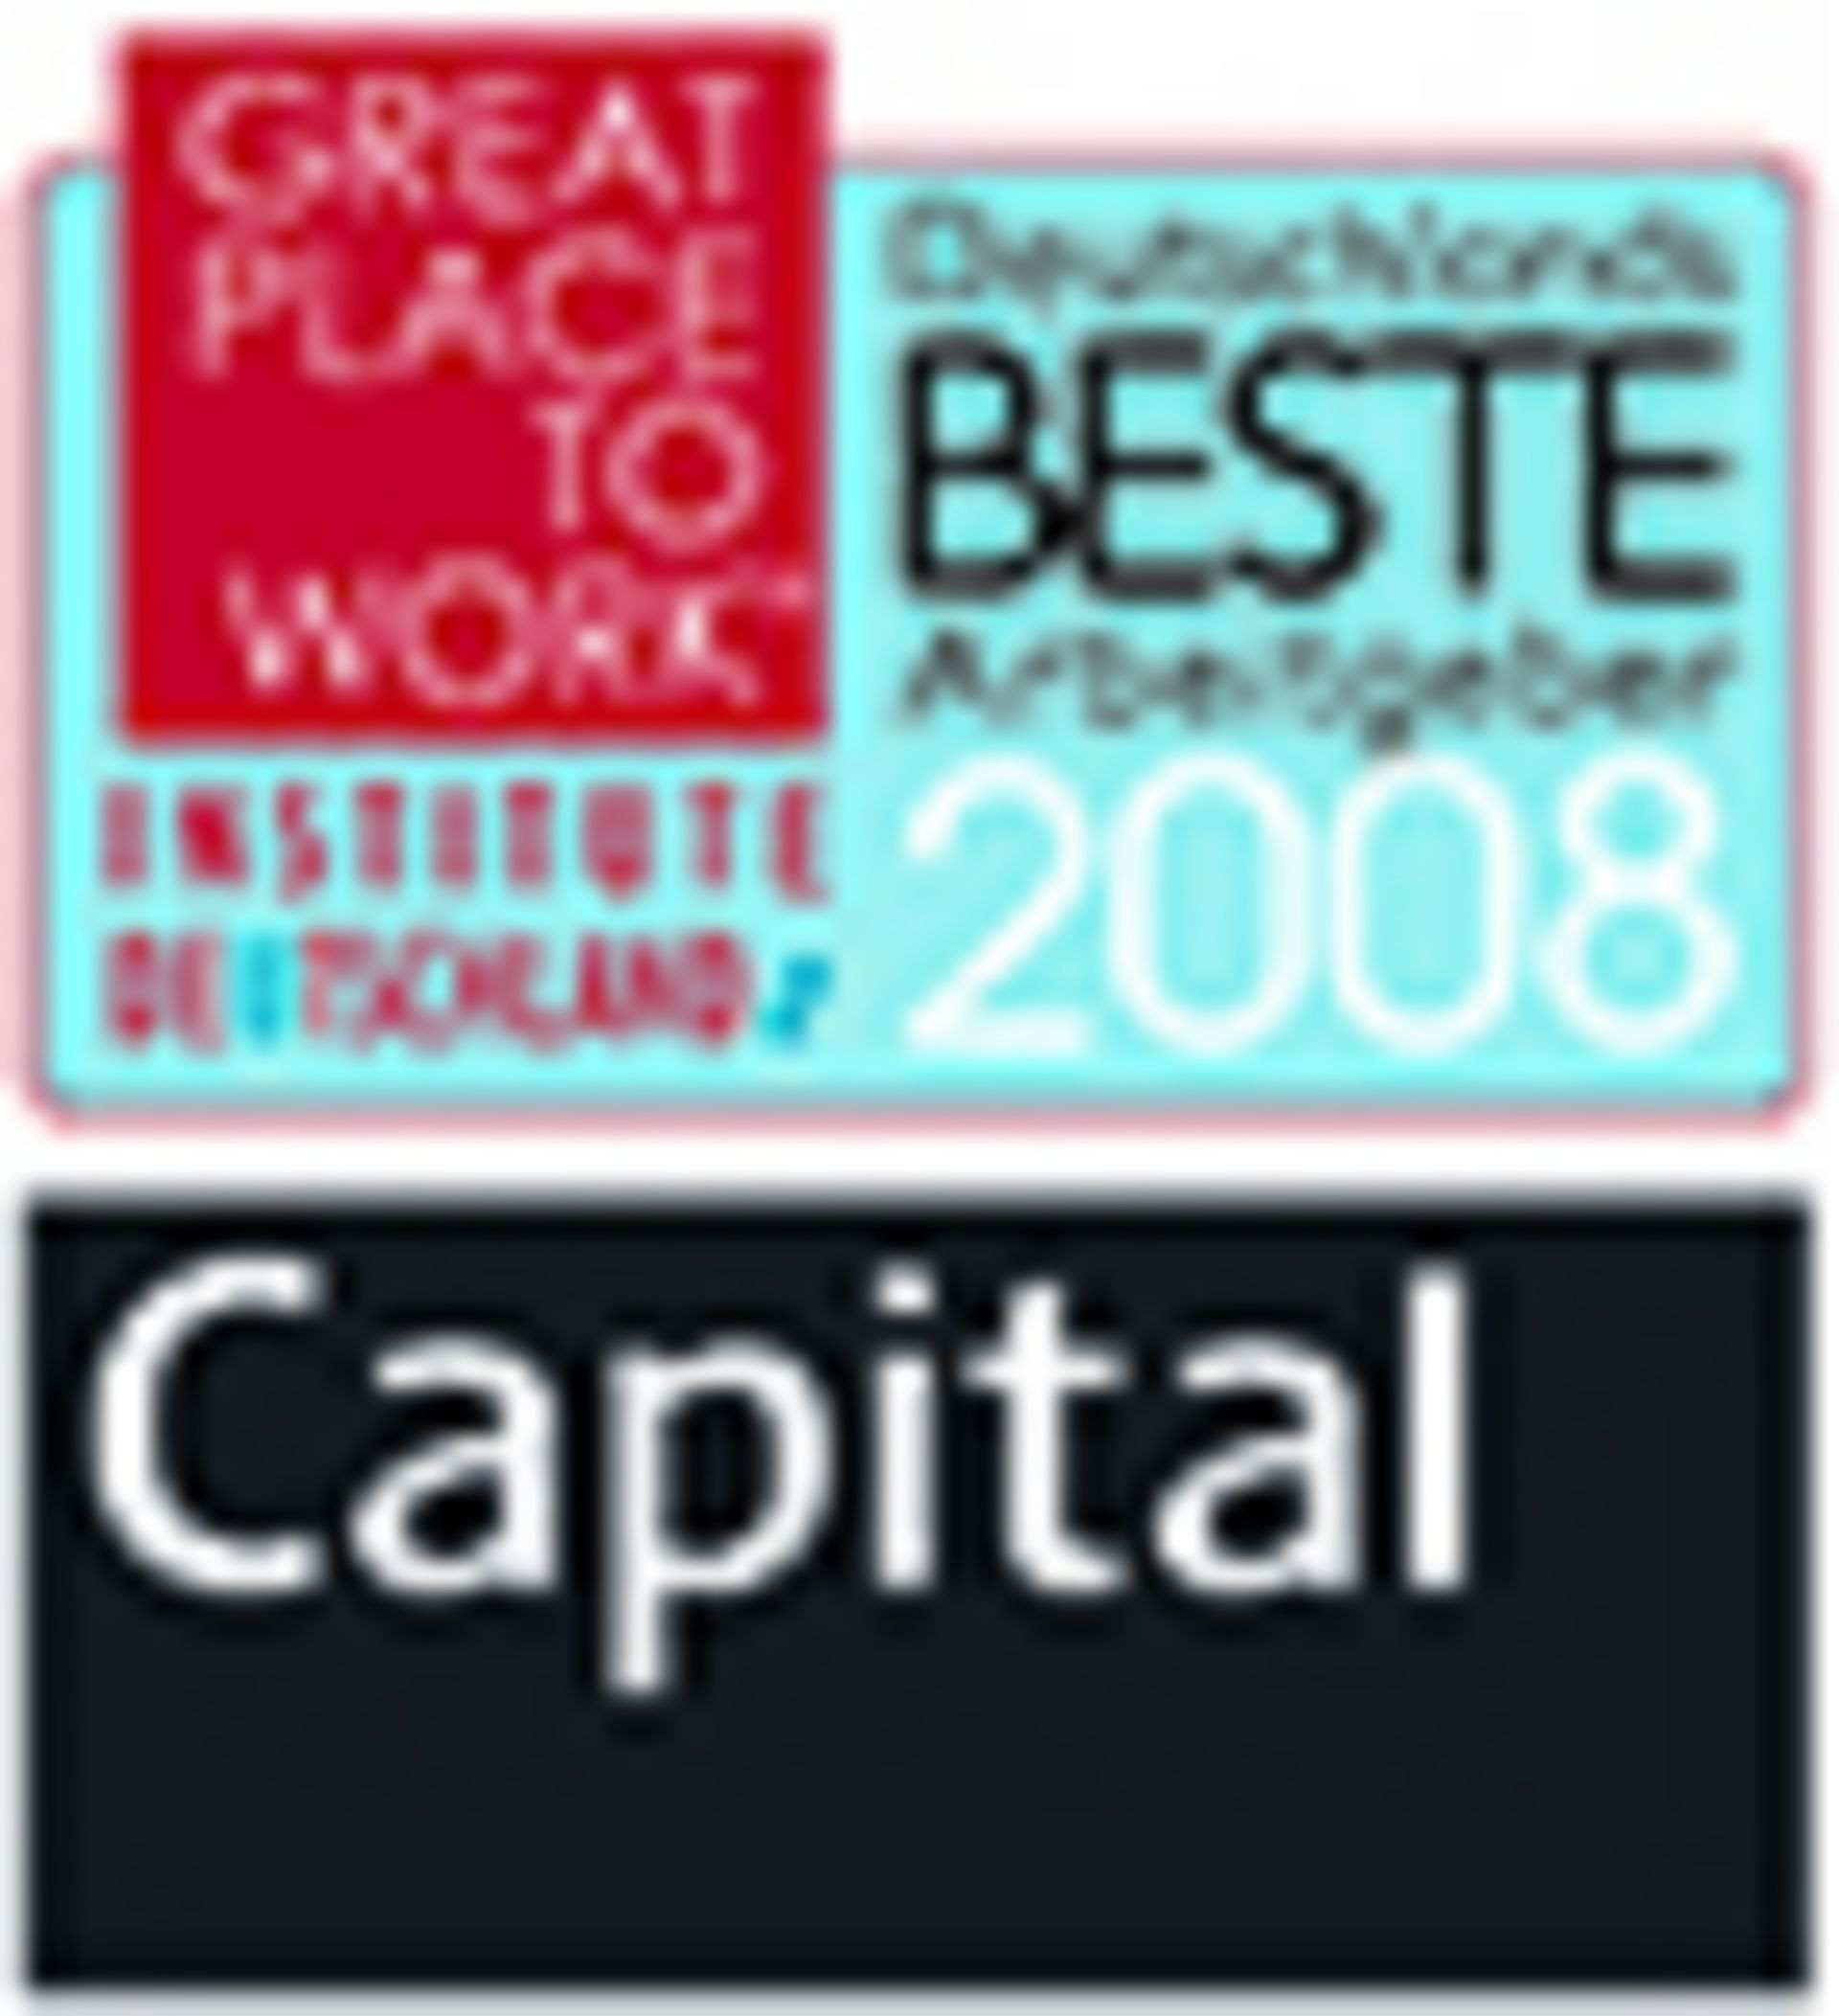 Great Place to Work 2008